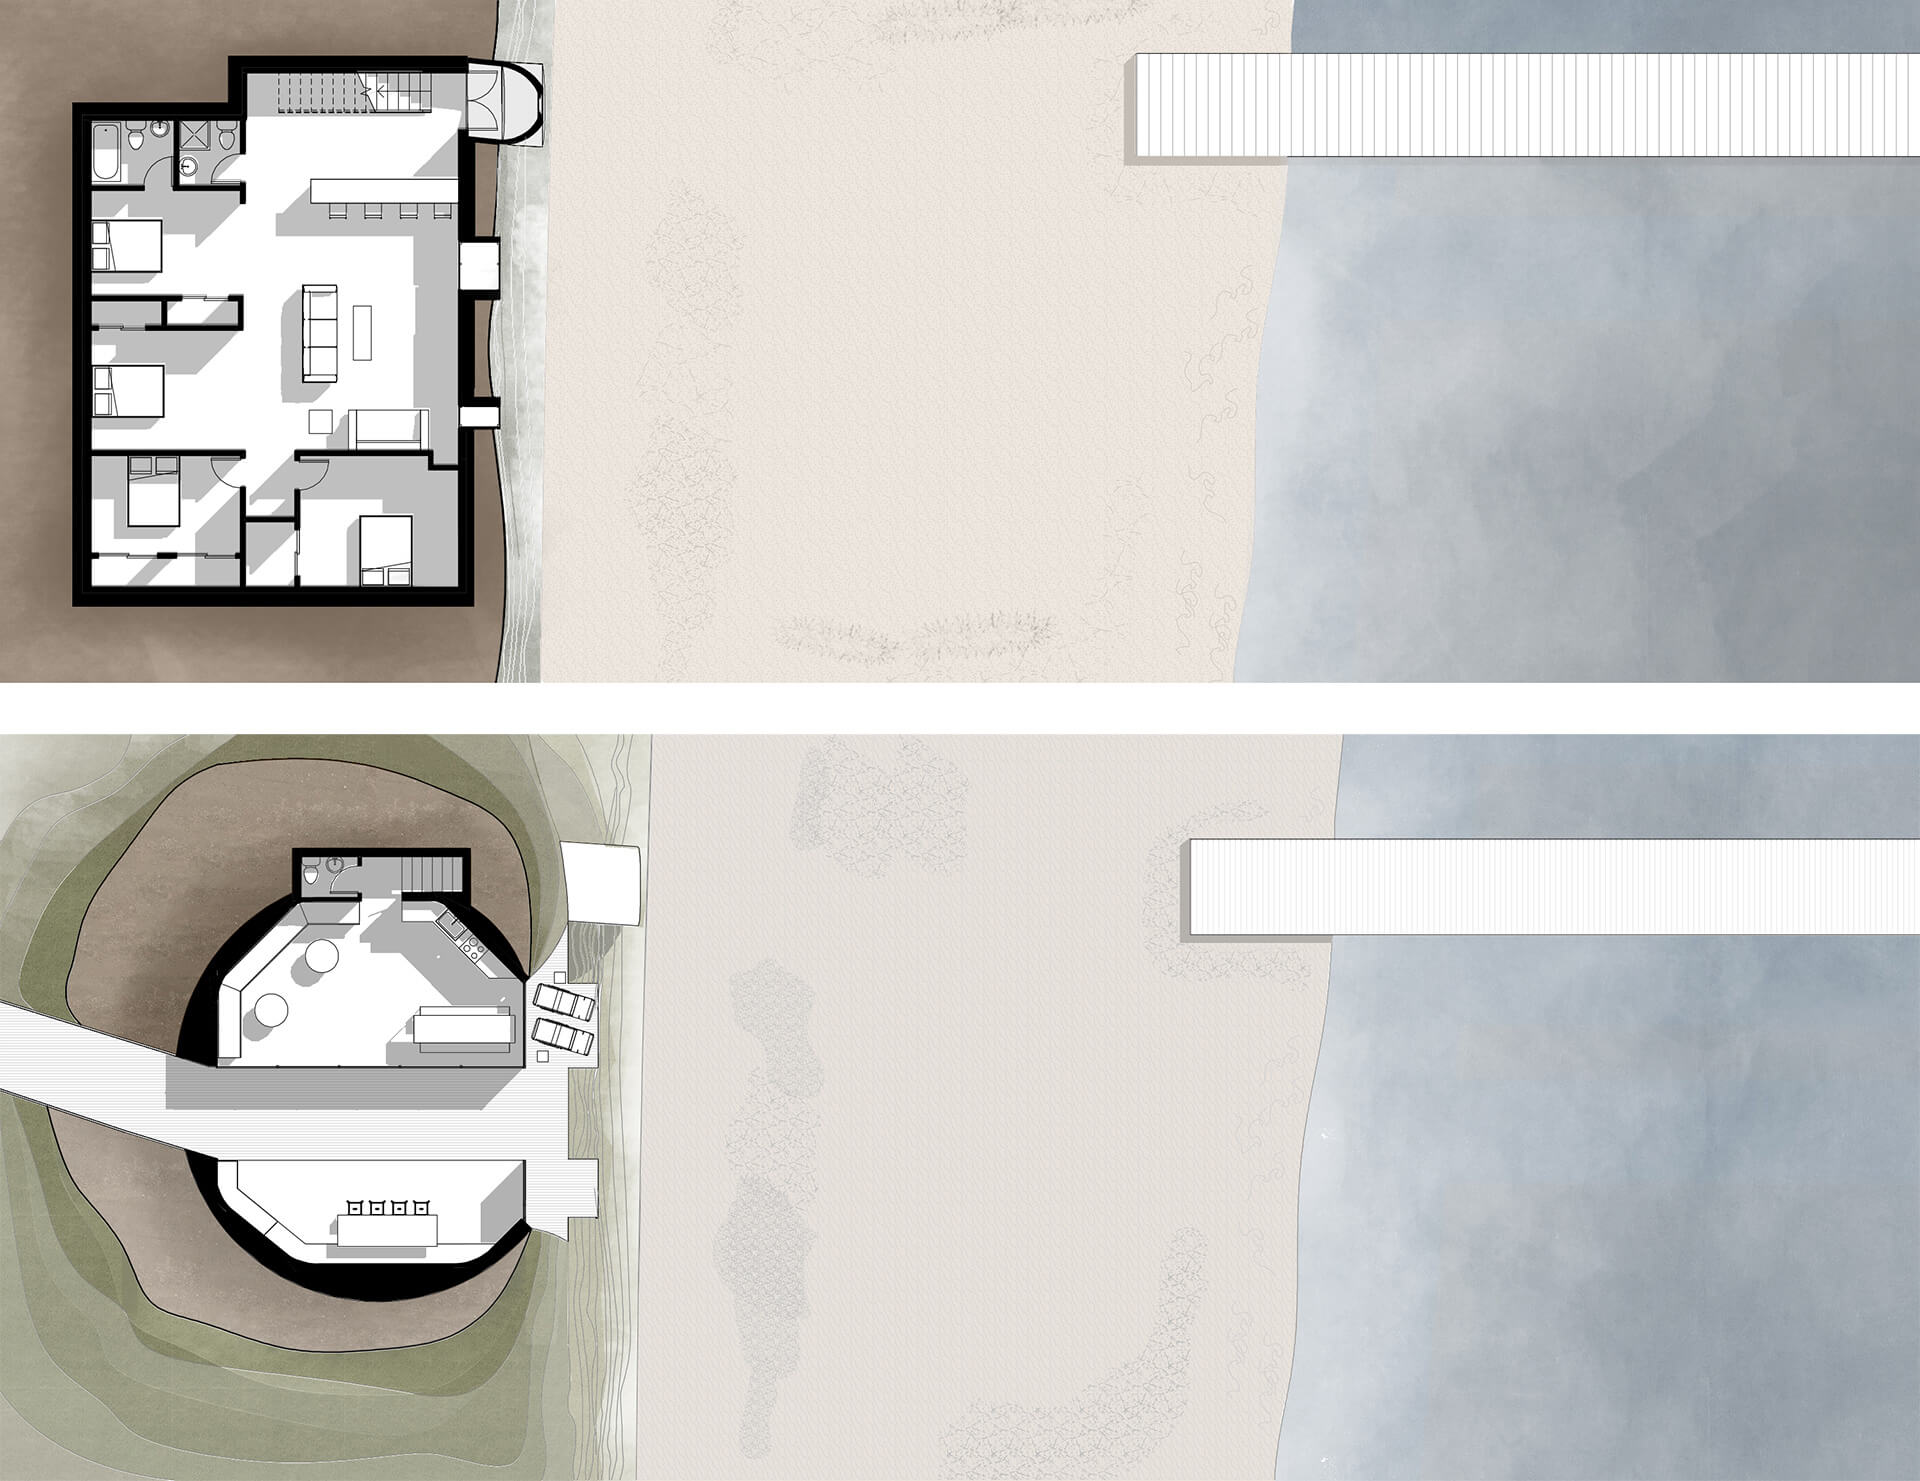 Lower Level Plan (top) and Upper Level Plan (bottom)| Dune House by Studio Vural | STIRworld